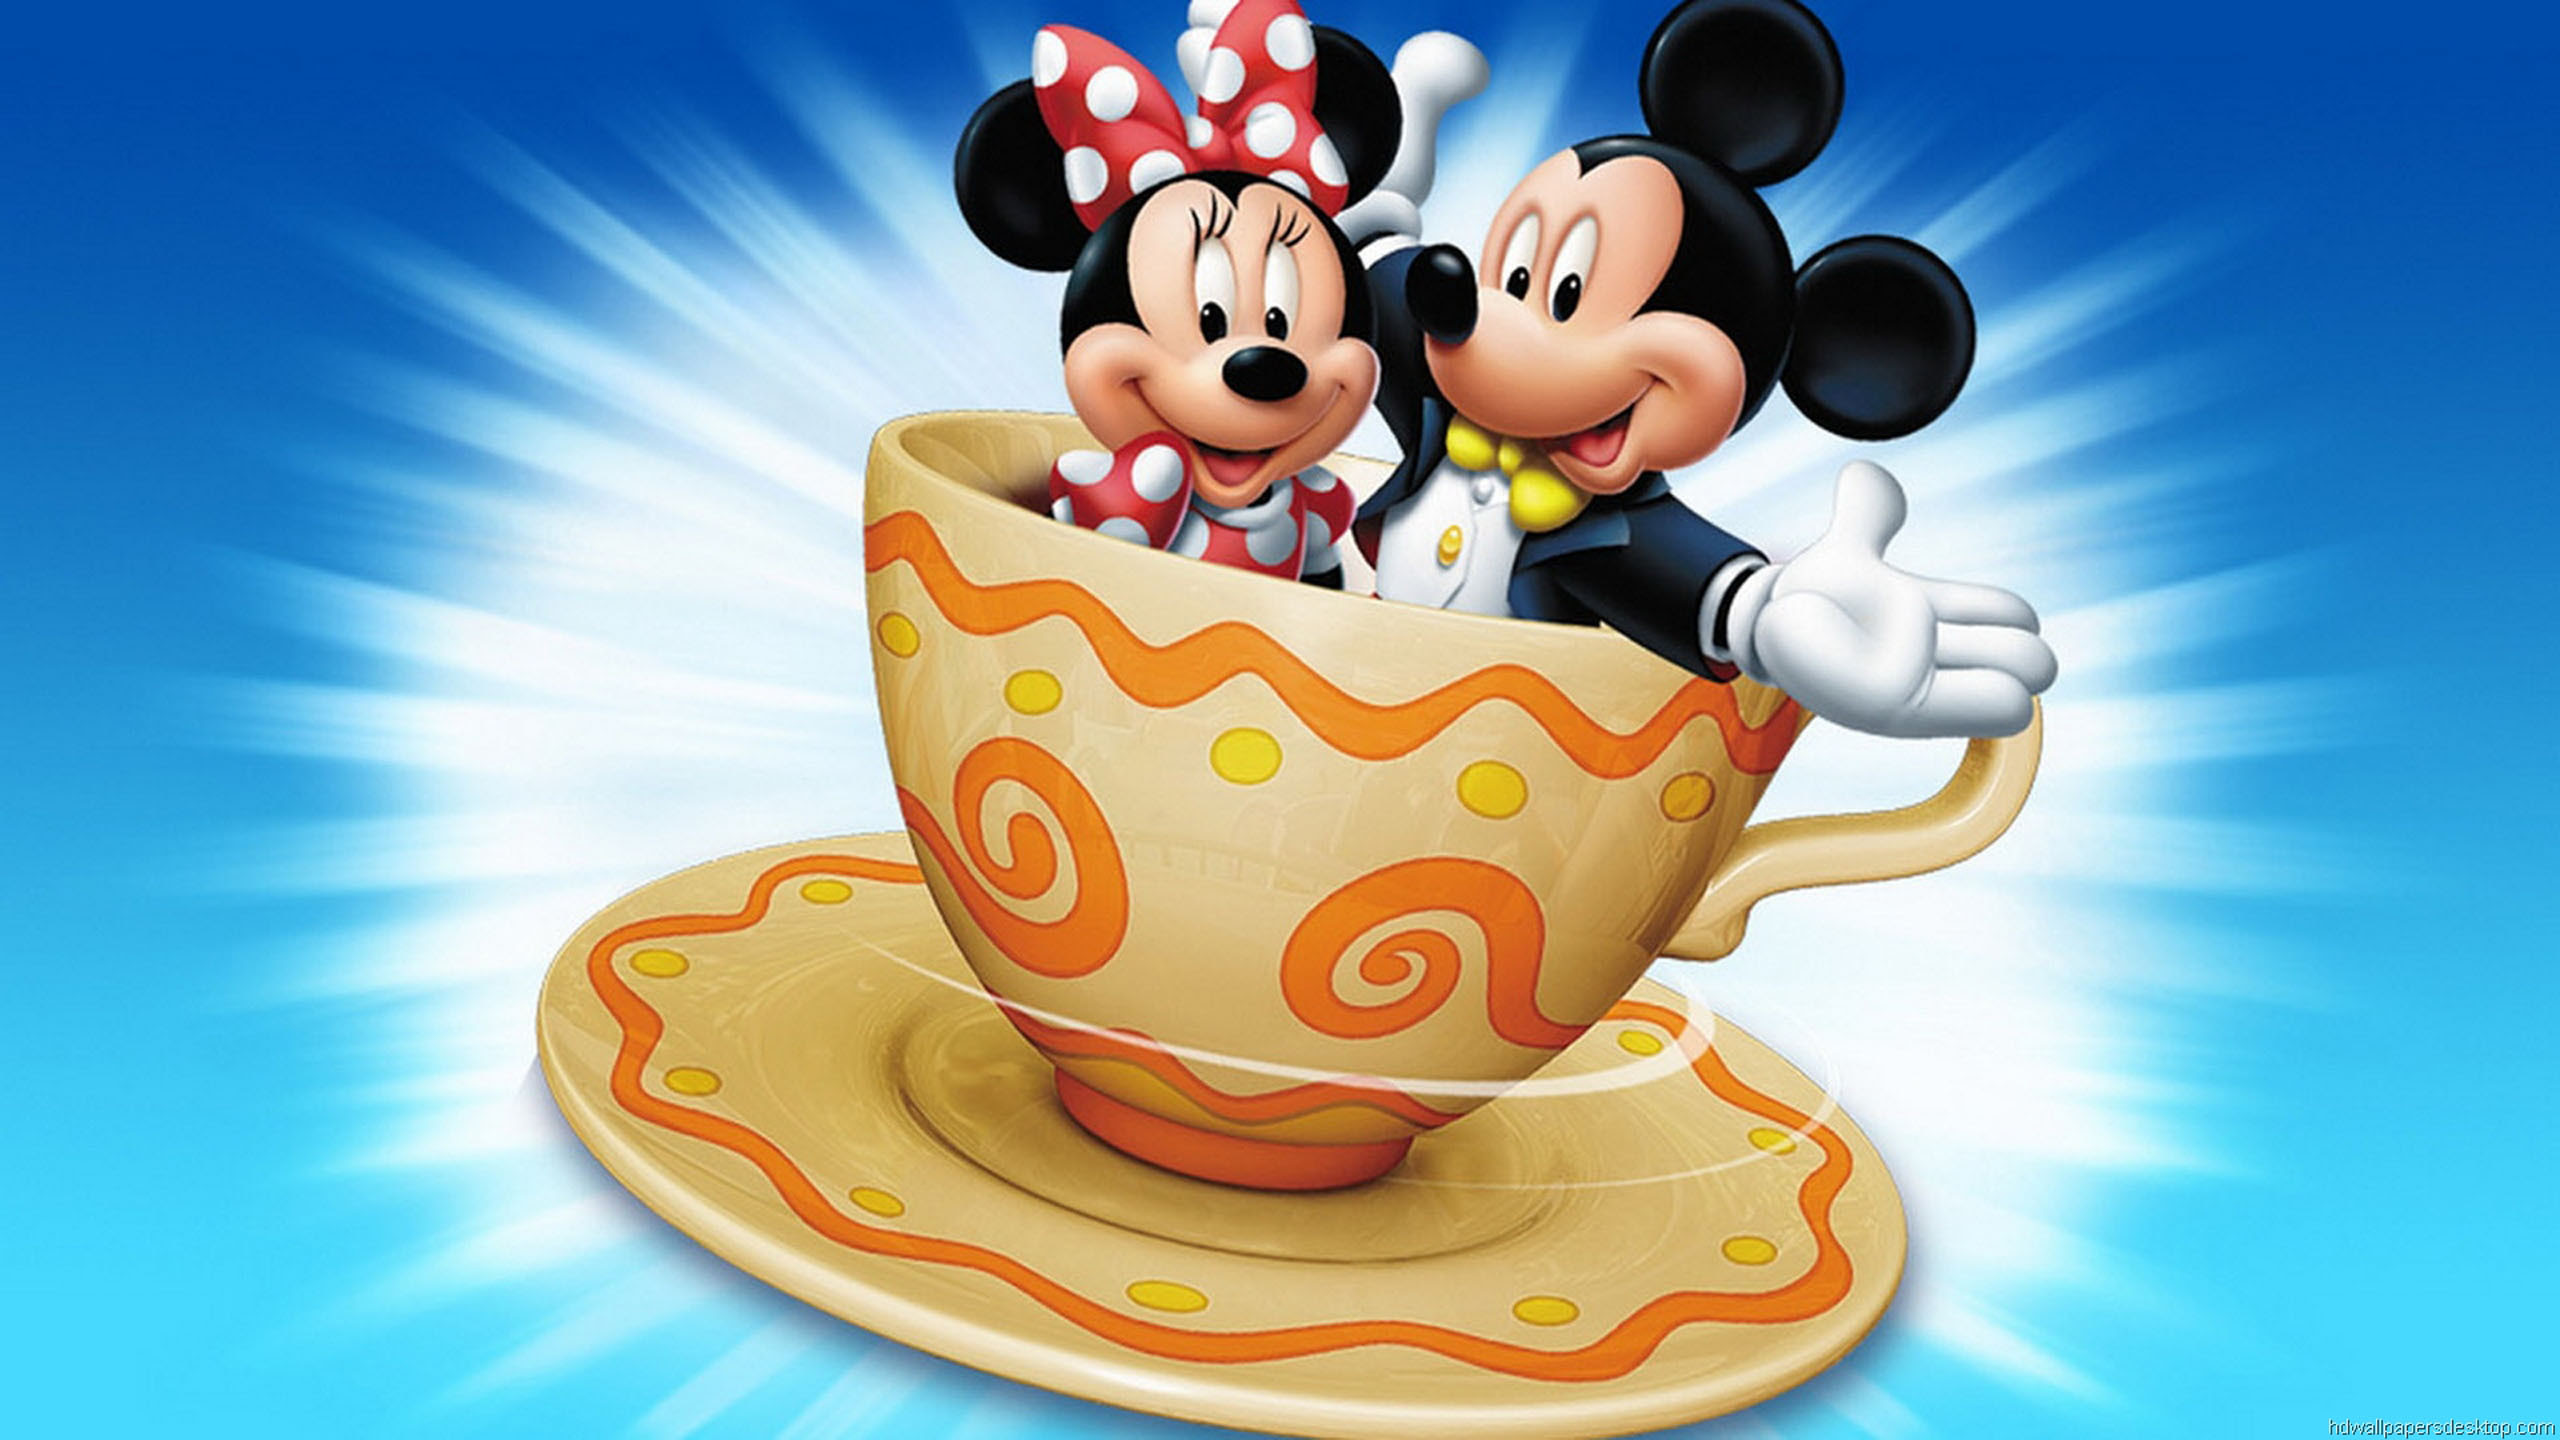 Mickey And Minnie Mouse Wallpaper 2560x1440